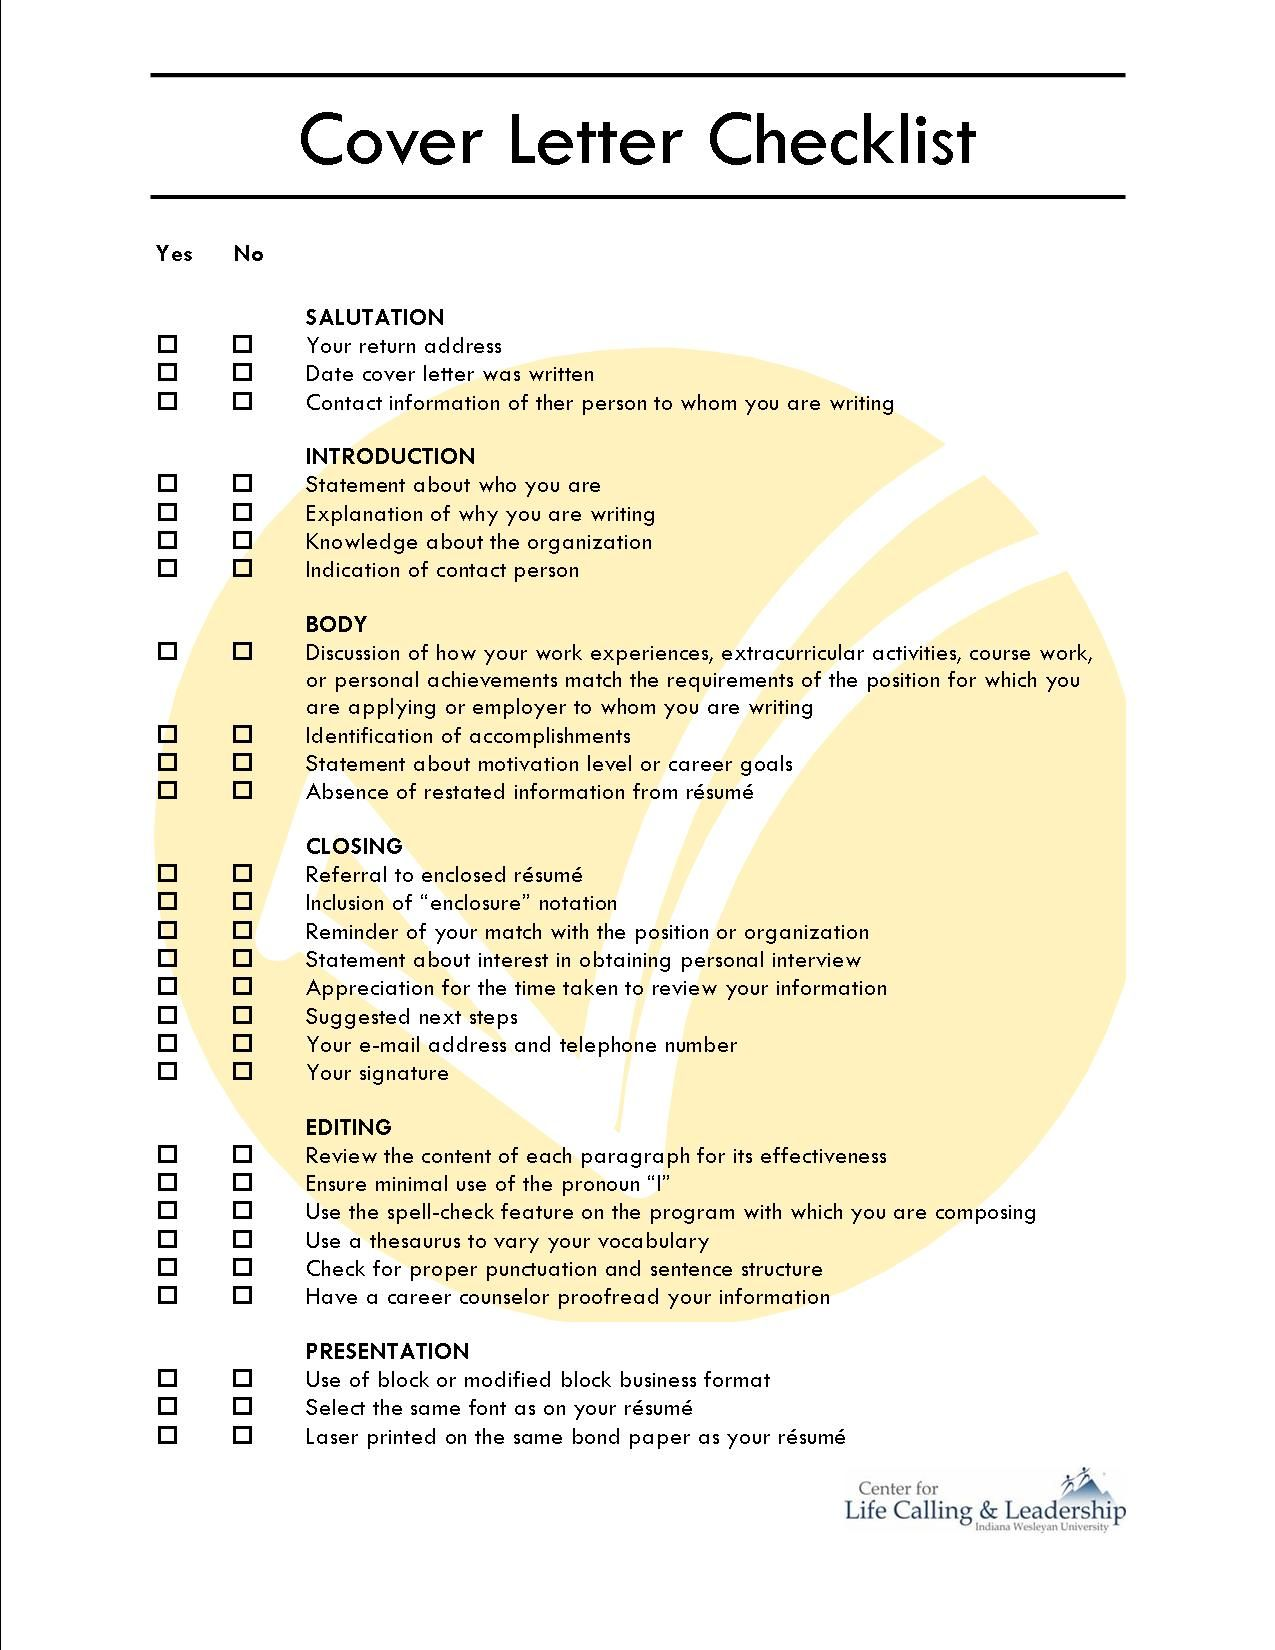 cover letter checklist | Cover Letters | Sample resume cover letter ...